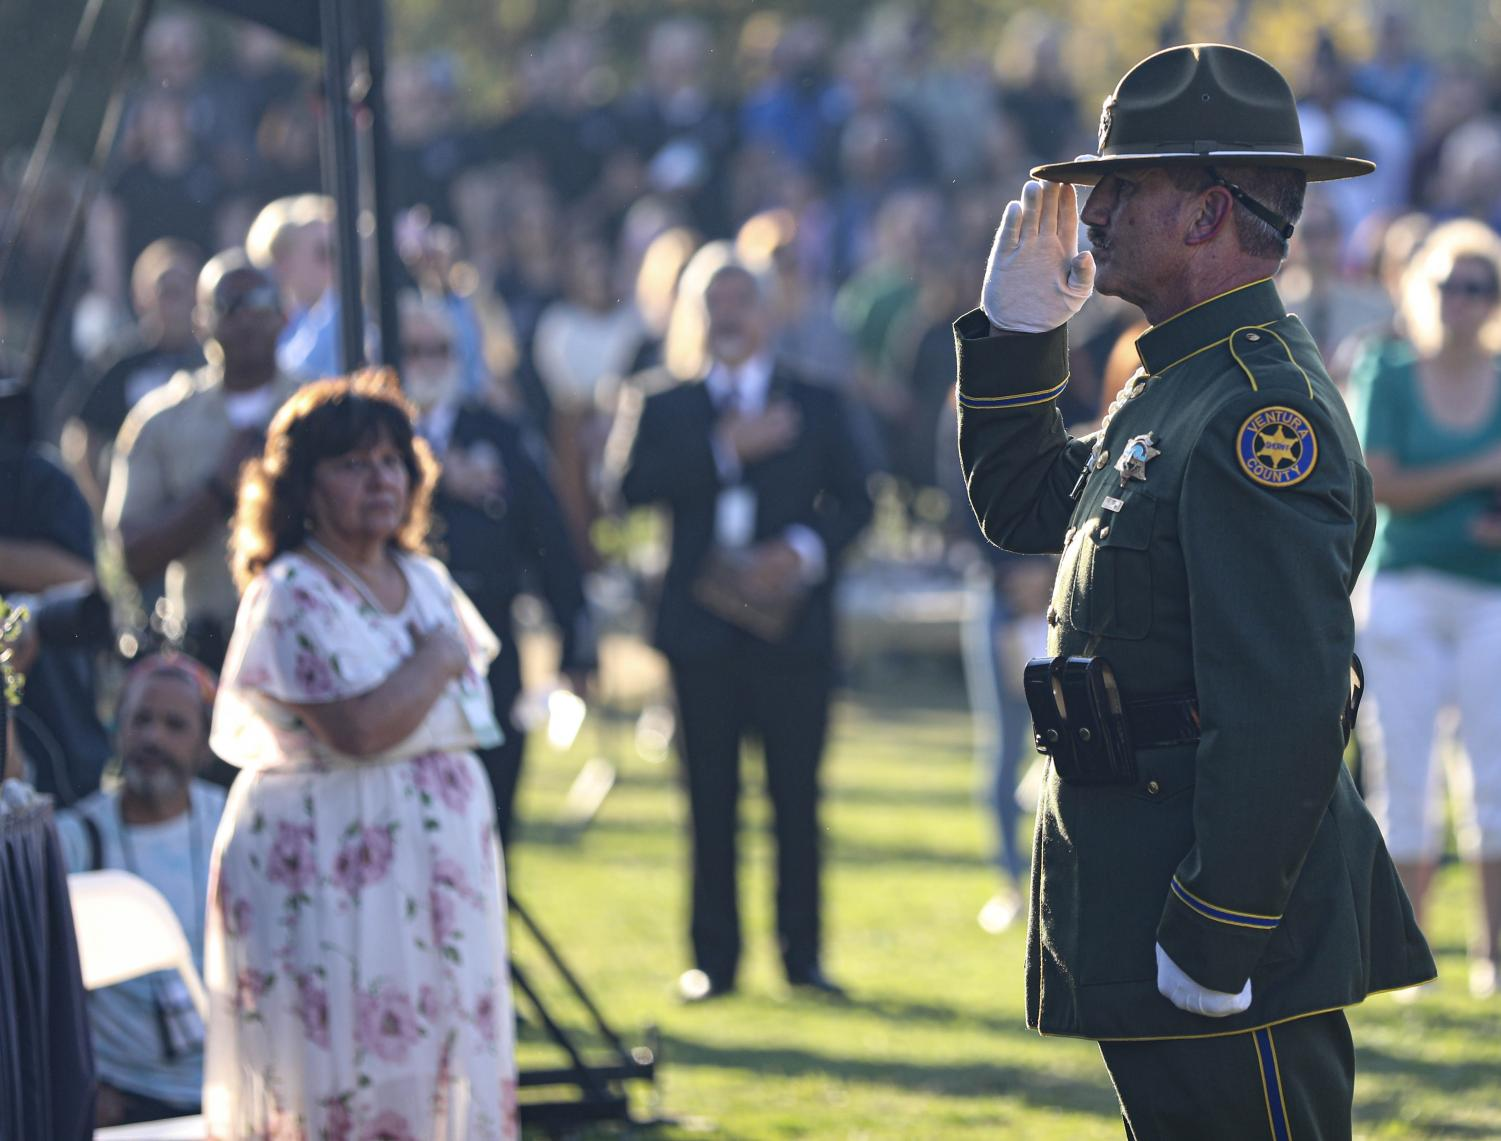 Sgt. Pat Ruby salutes during the singing of the national anthem at the dedication for the new Healing Garden in Thousand Oaks on Nov. 7. Hundreds of community members gathered to pay respects to the lost souls. Photo credit: Ryan Bough